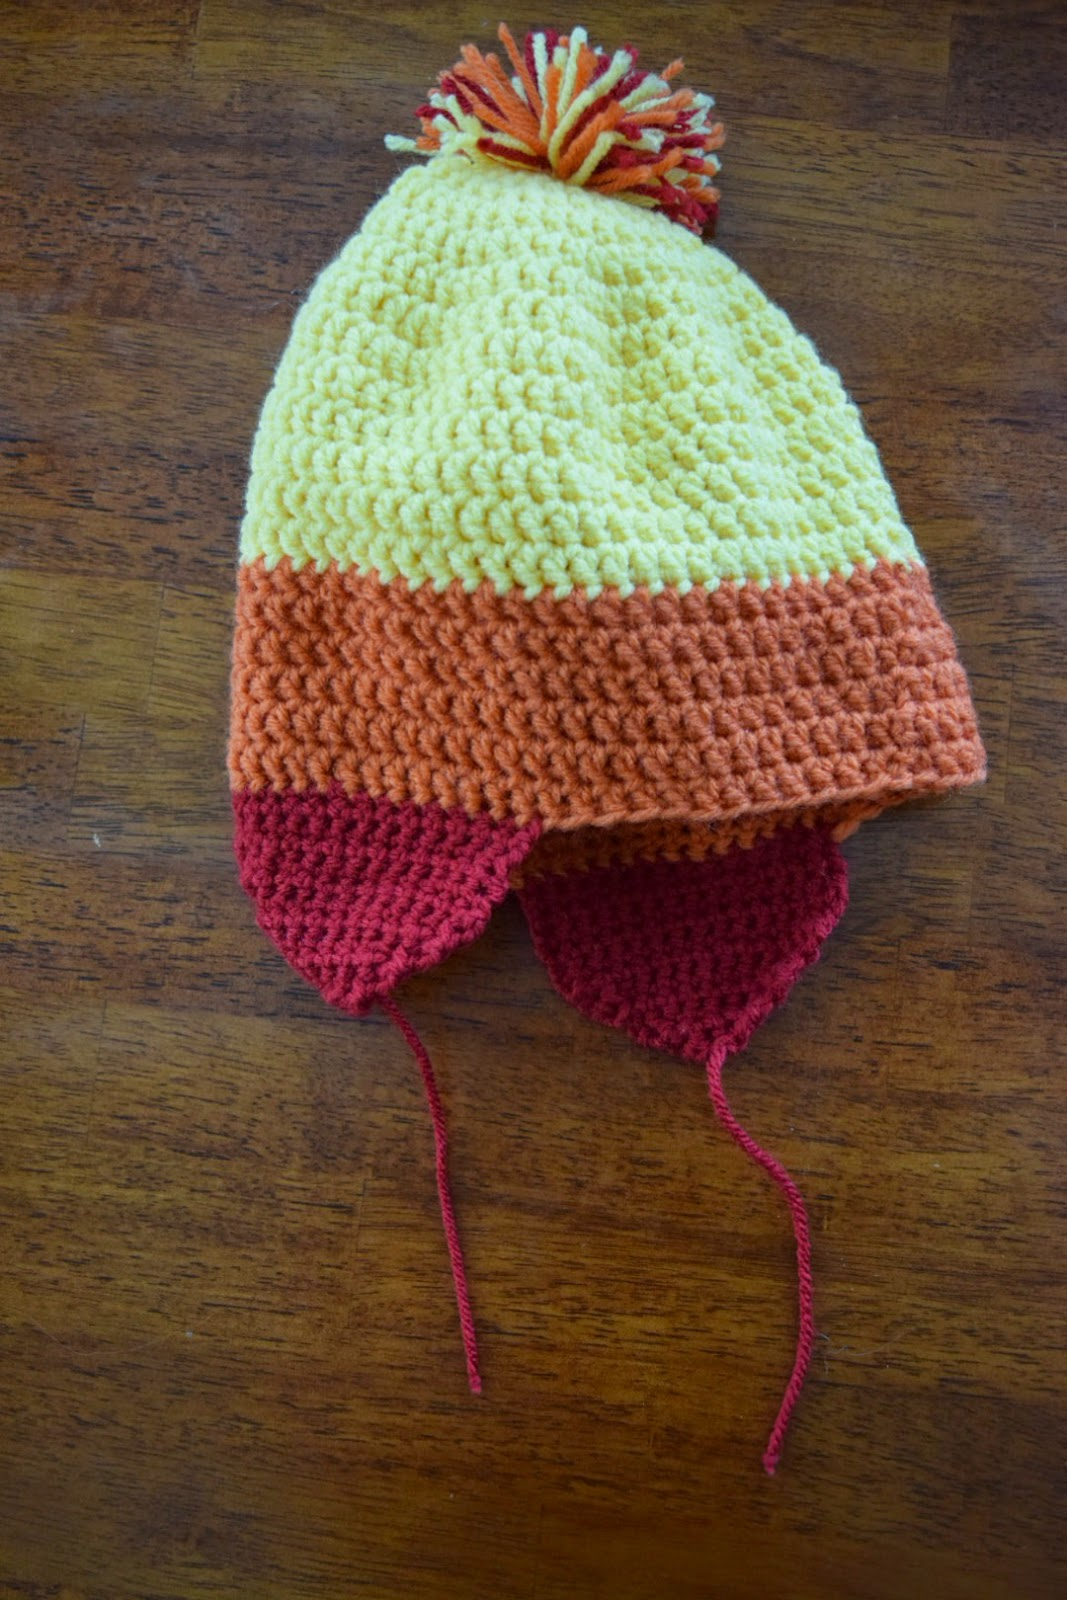 7e8e895331c Crochet version of Jayne Cobb s hat from Firefly - Free pattern tips and  notes